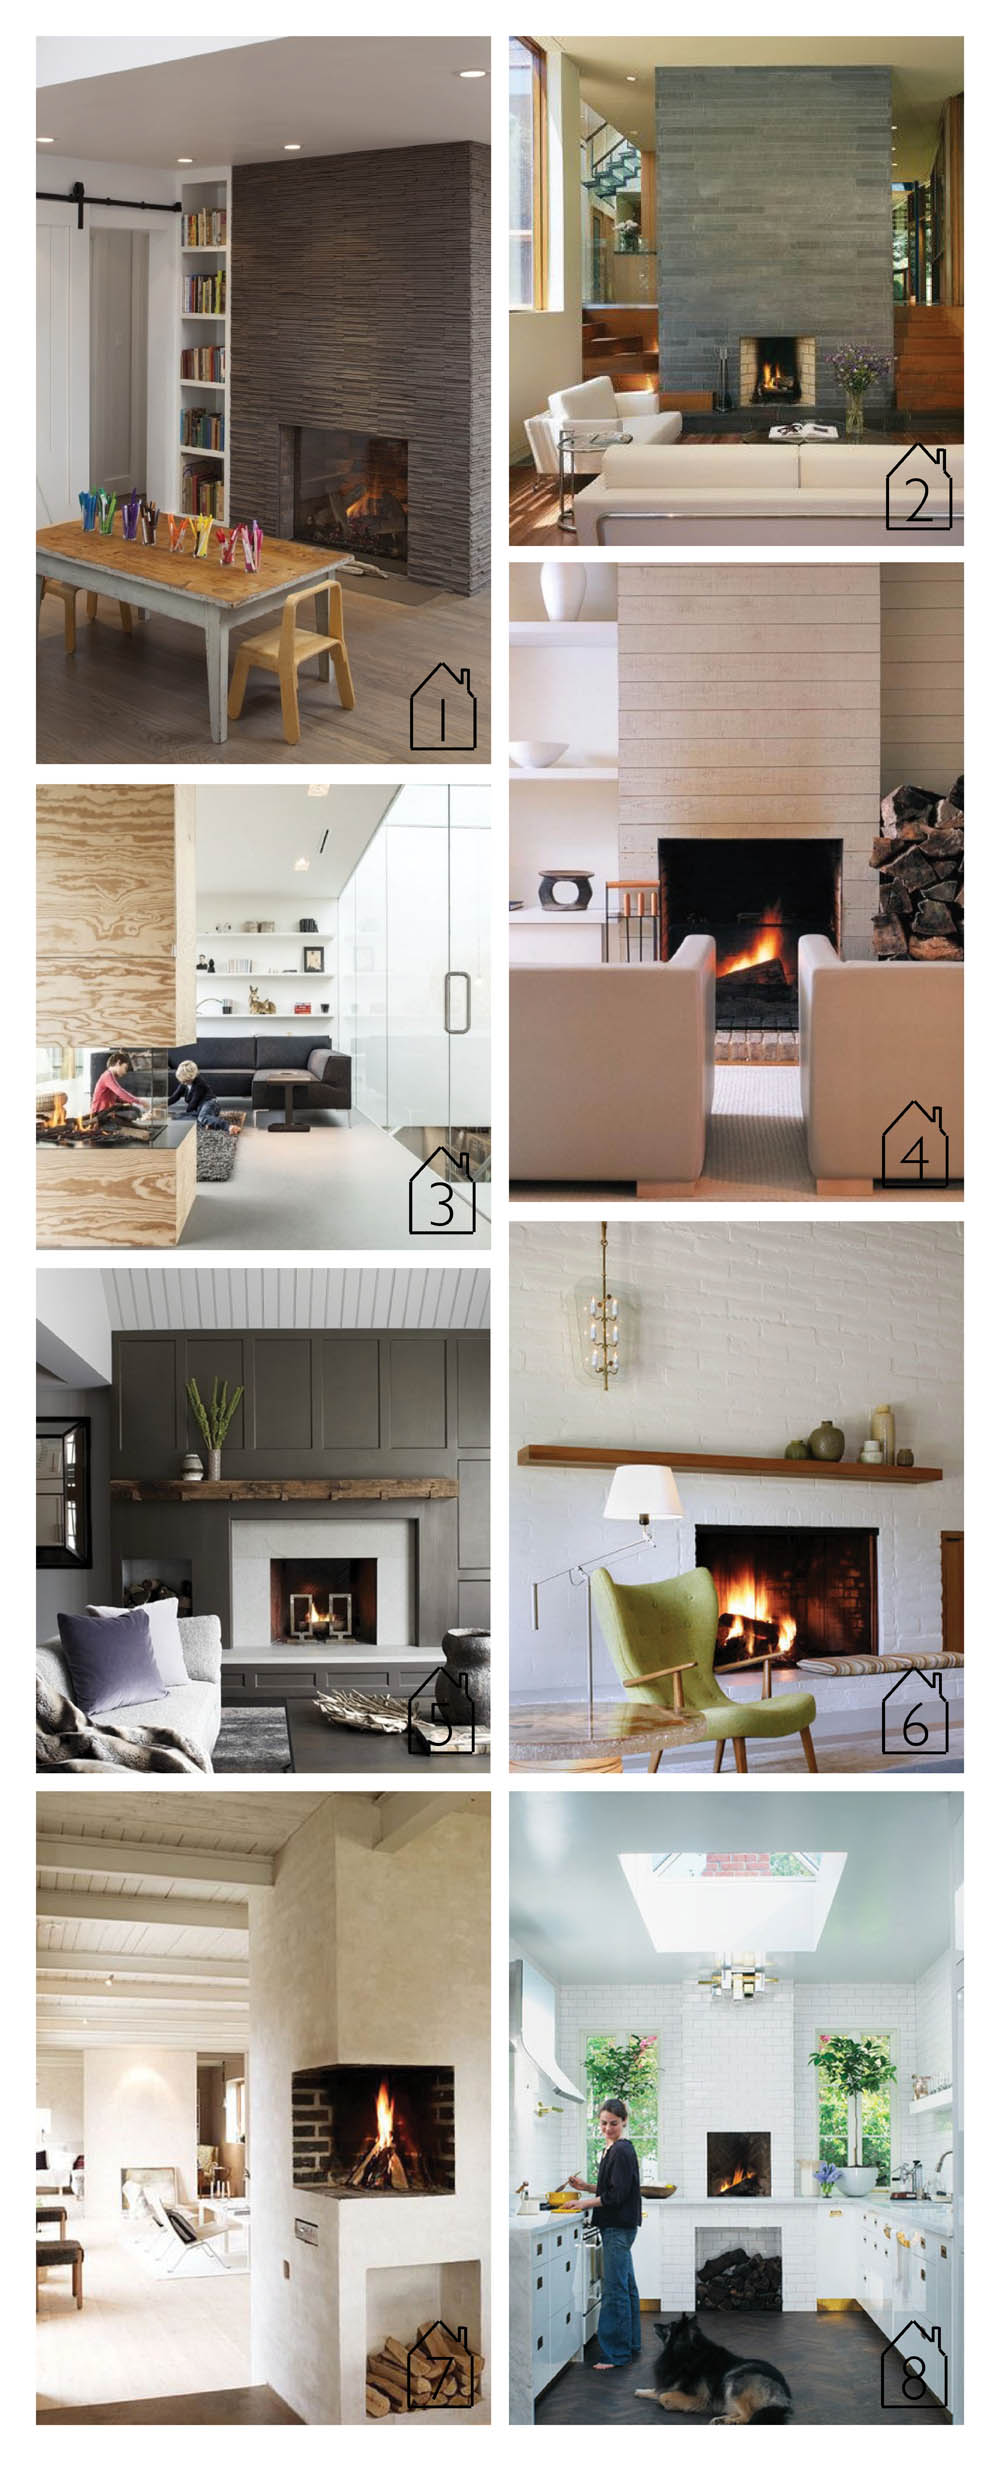 1. Open Mills Valley Home by  Tineke Triggs  image via  Houzz   2. Fireplace design by  Charles Rose Architects  image via  Houzz   3. Villa V by  Paul de Ruiter  Architects image via  ArchDaily   4. Catherine Memmi Summer House image via  Houzz   5. Image via  New England Home   6. Portola Valley home by  The Office of Charles de Lisle   7. Nicklas Rudfell via  Apartment Therapy   8.  Canadian House and Home   design by Sasha Seymour